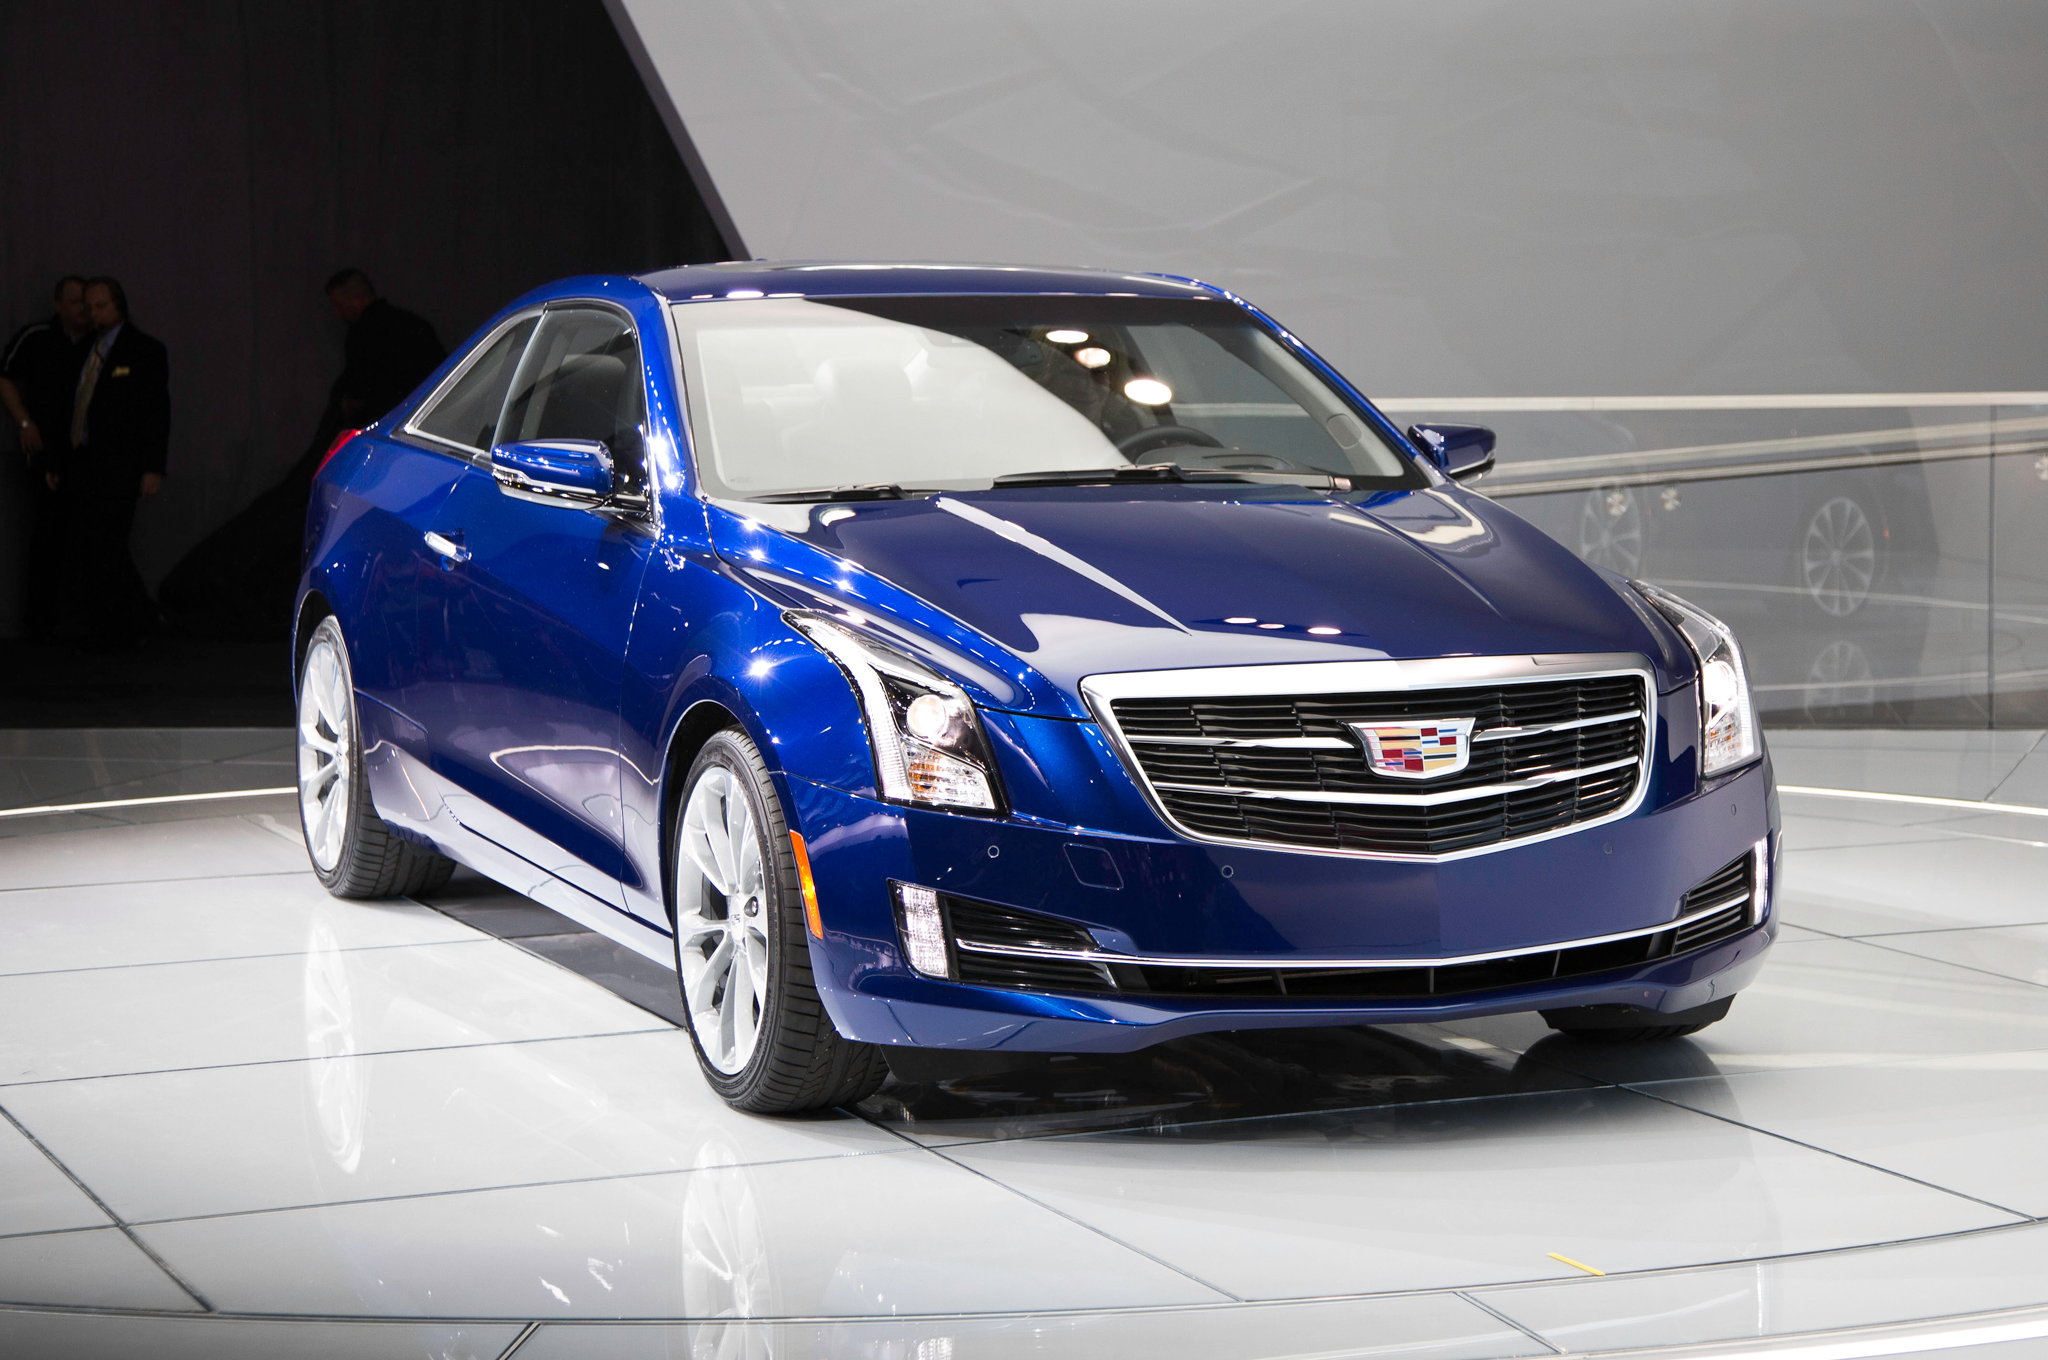 2015 Cadillac Ats Coupe Front Close Up (Photo 14 of 21)